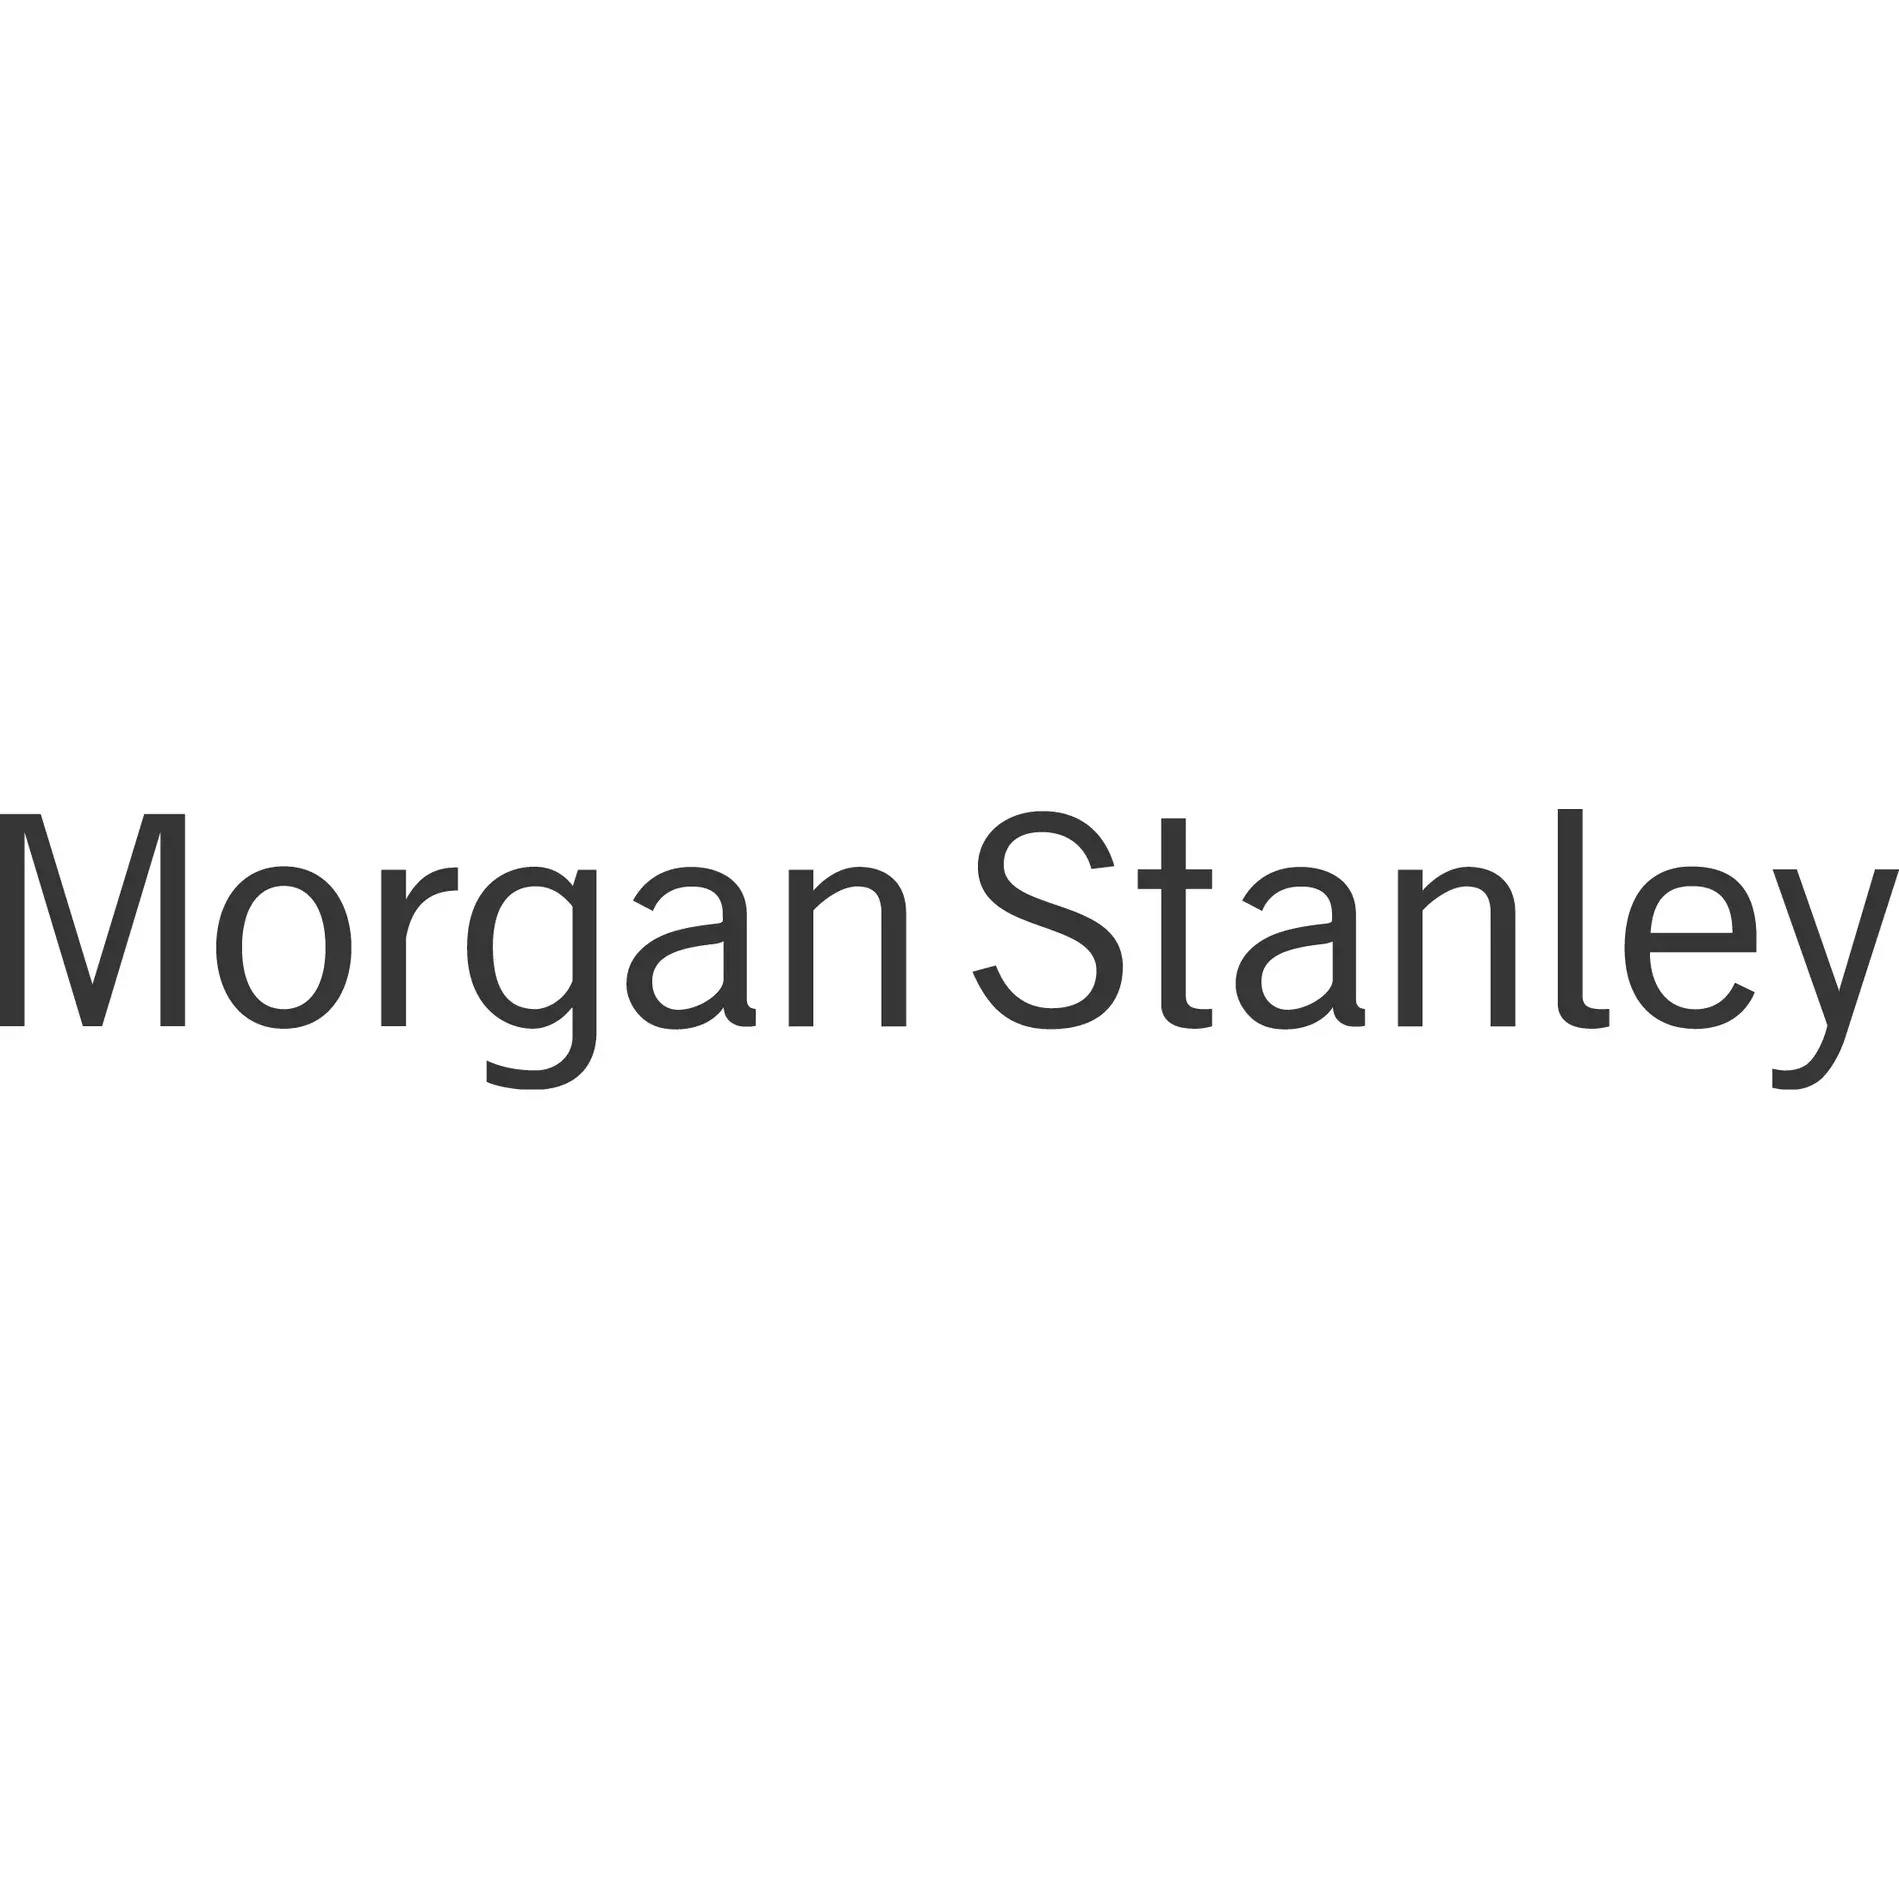 Scott F Vender - Morgan Stanley | Financial Advisor in Chicago,Illinois